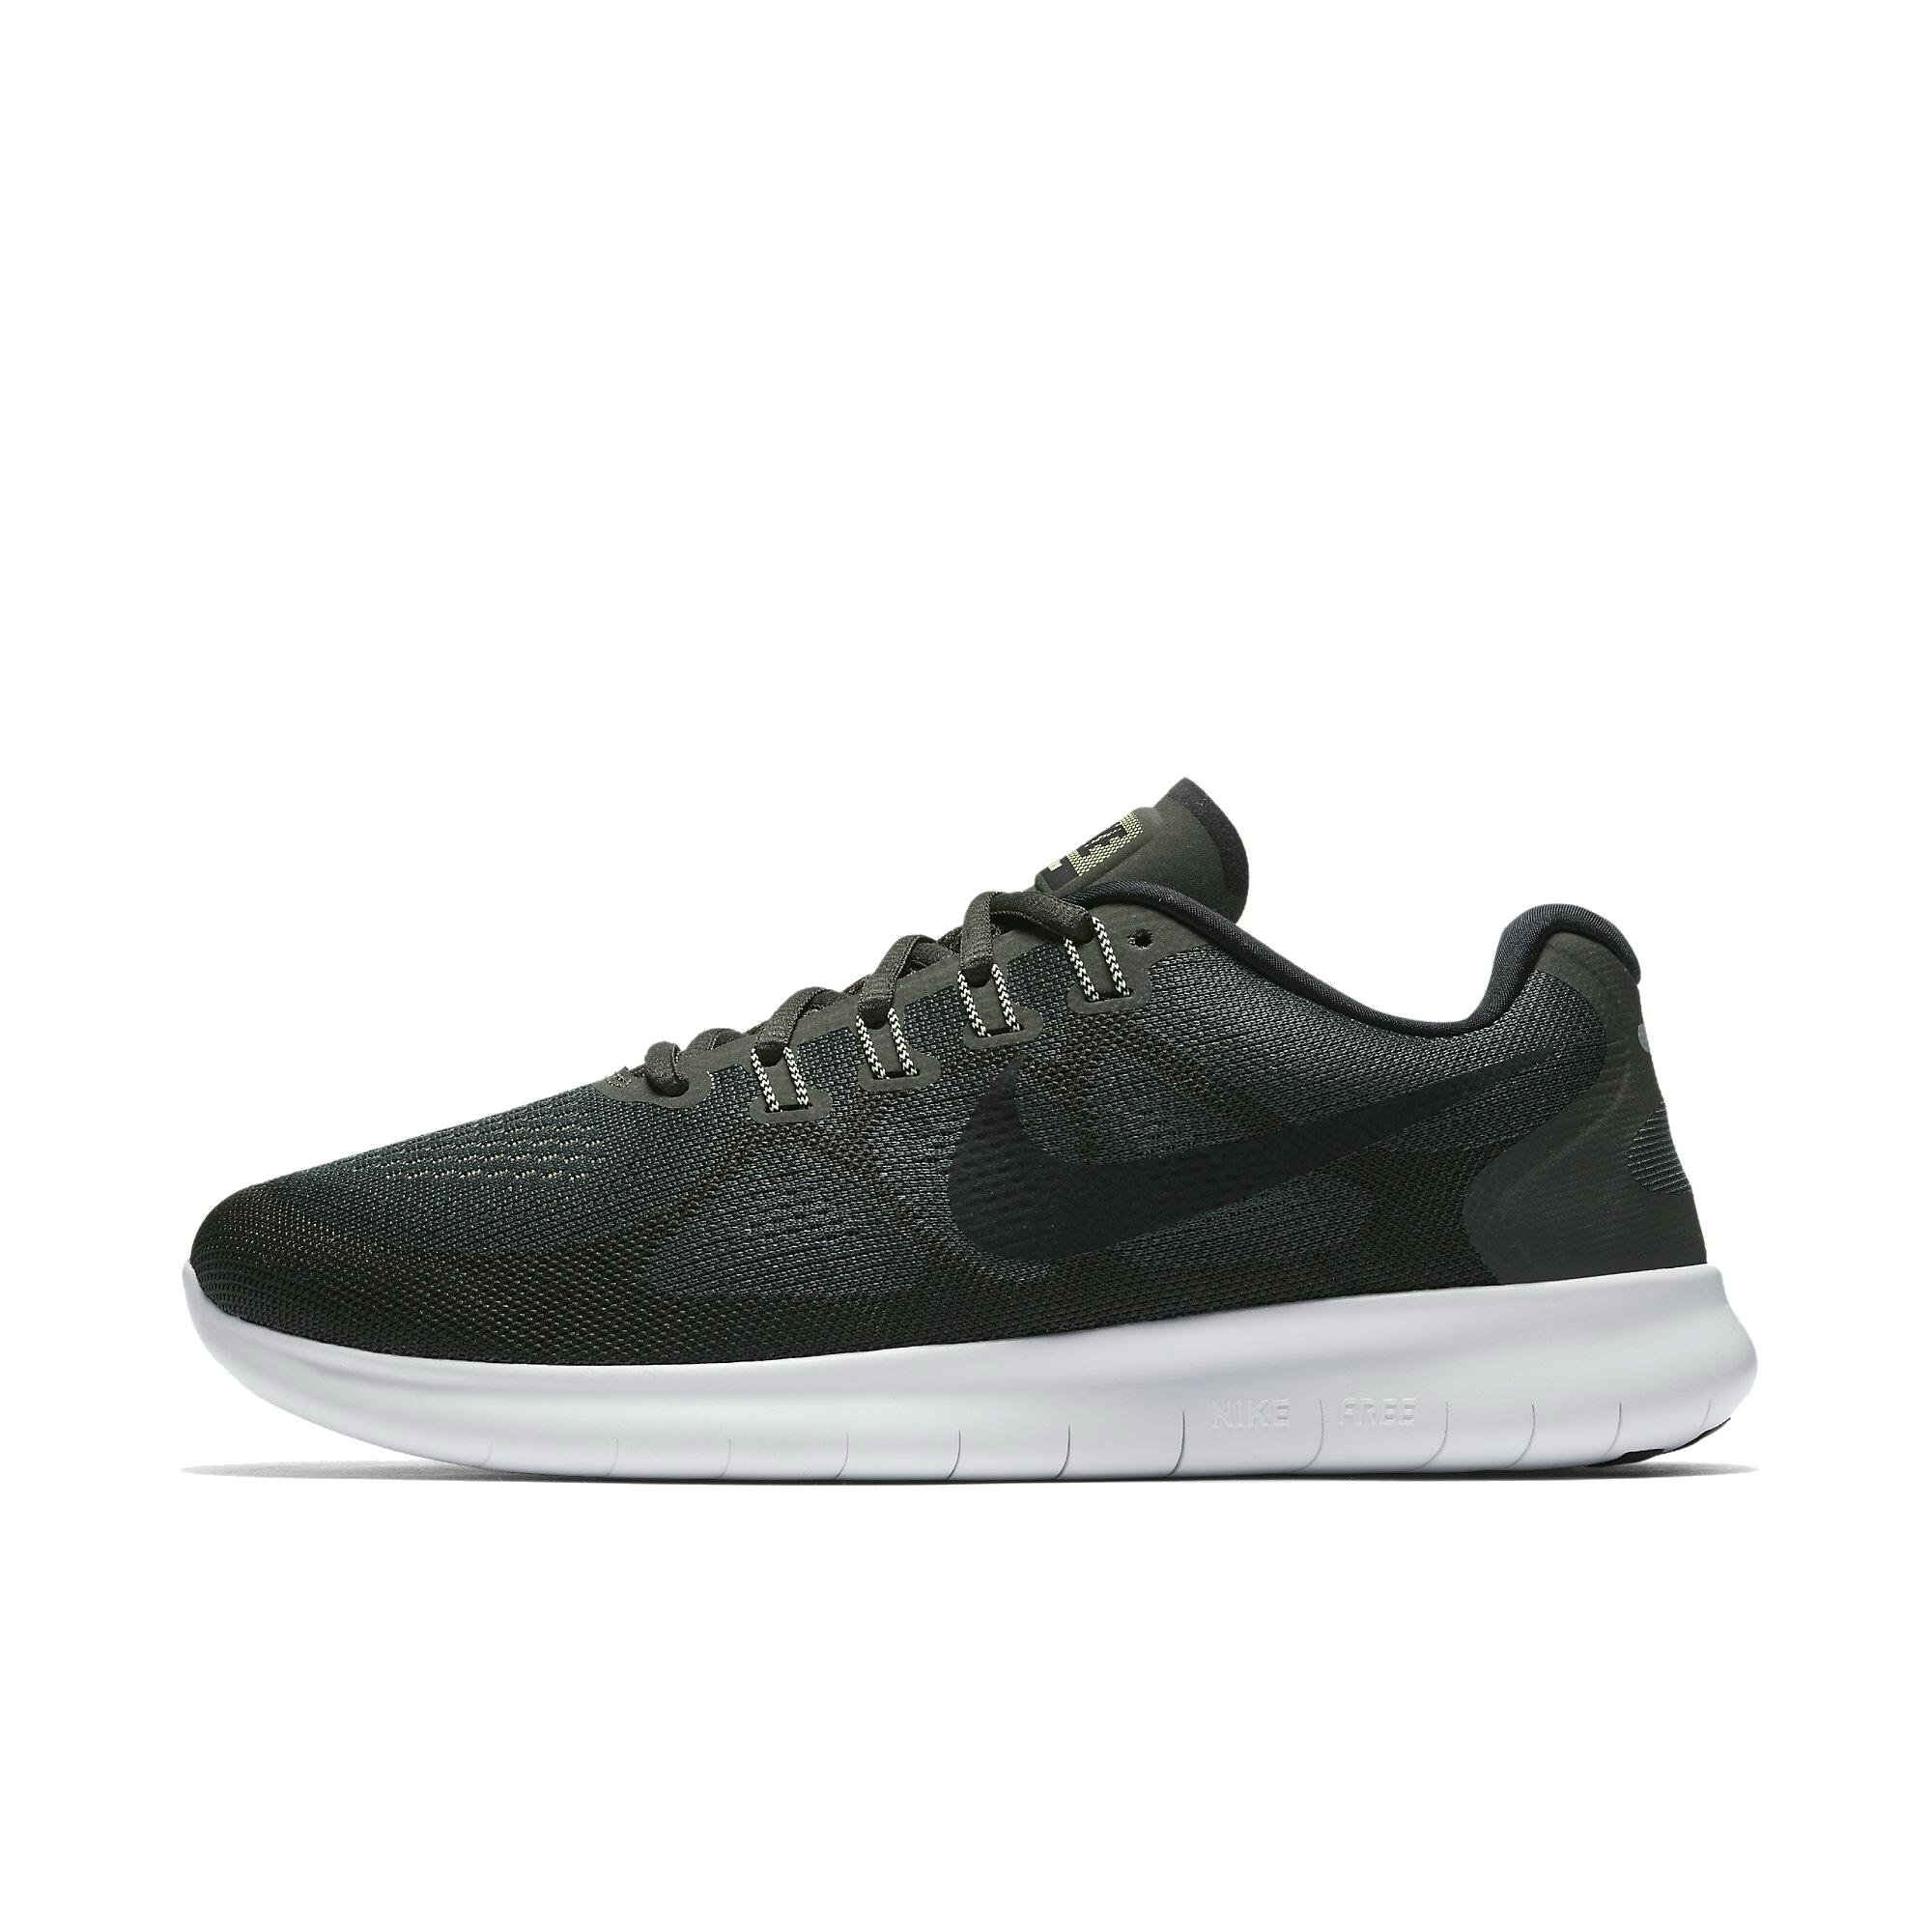 bfcba078df731 Galleon - NIKE Free RN 2017 Mens Running Trainers 880839 Sneakers Shoes (UK  7.5 US 8.5 EU 42